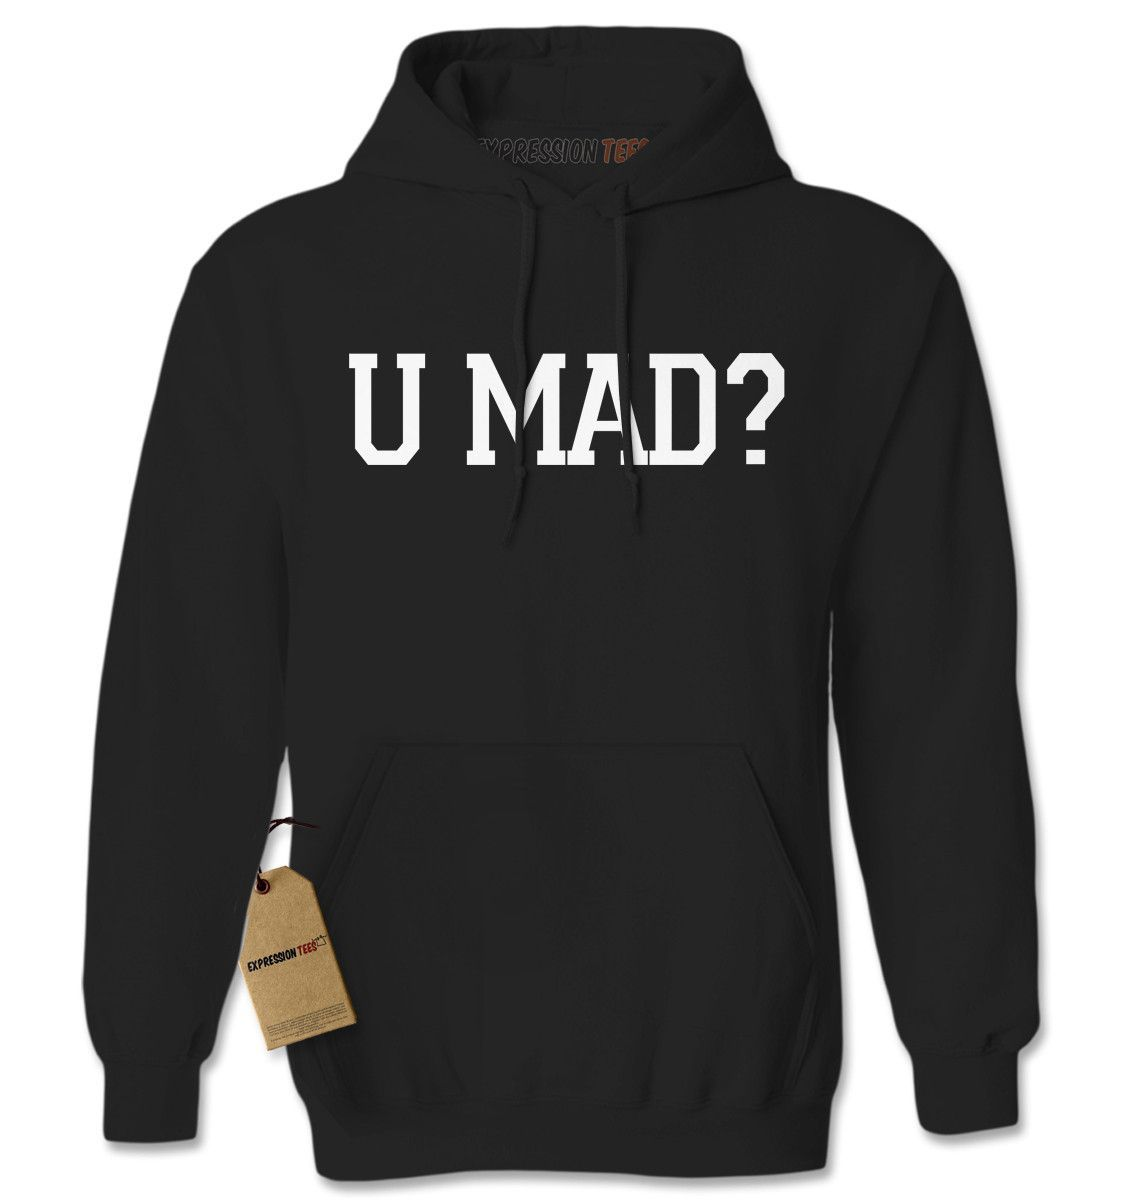 U Mad? You Mad? Adult Hoodie Sweatshirt